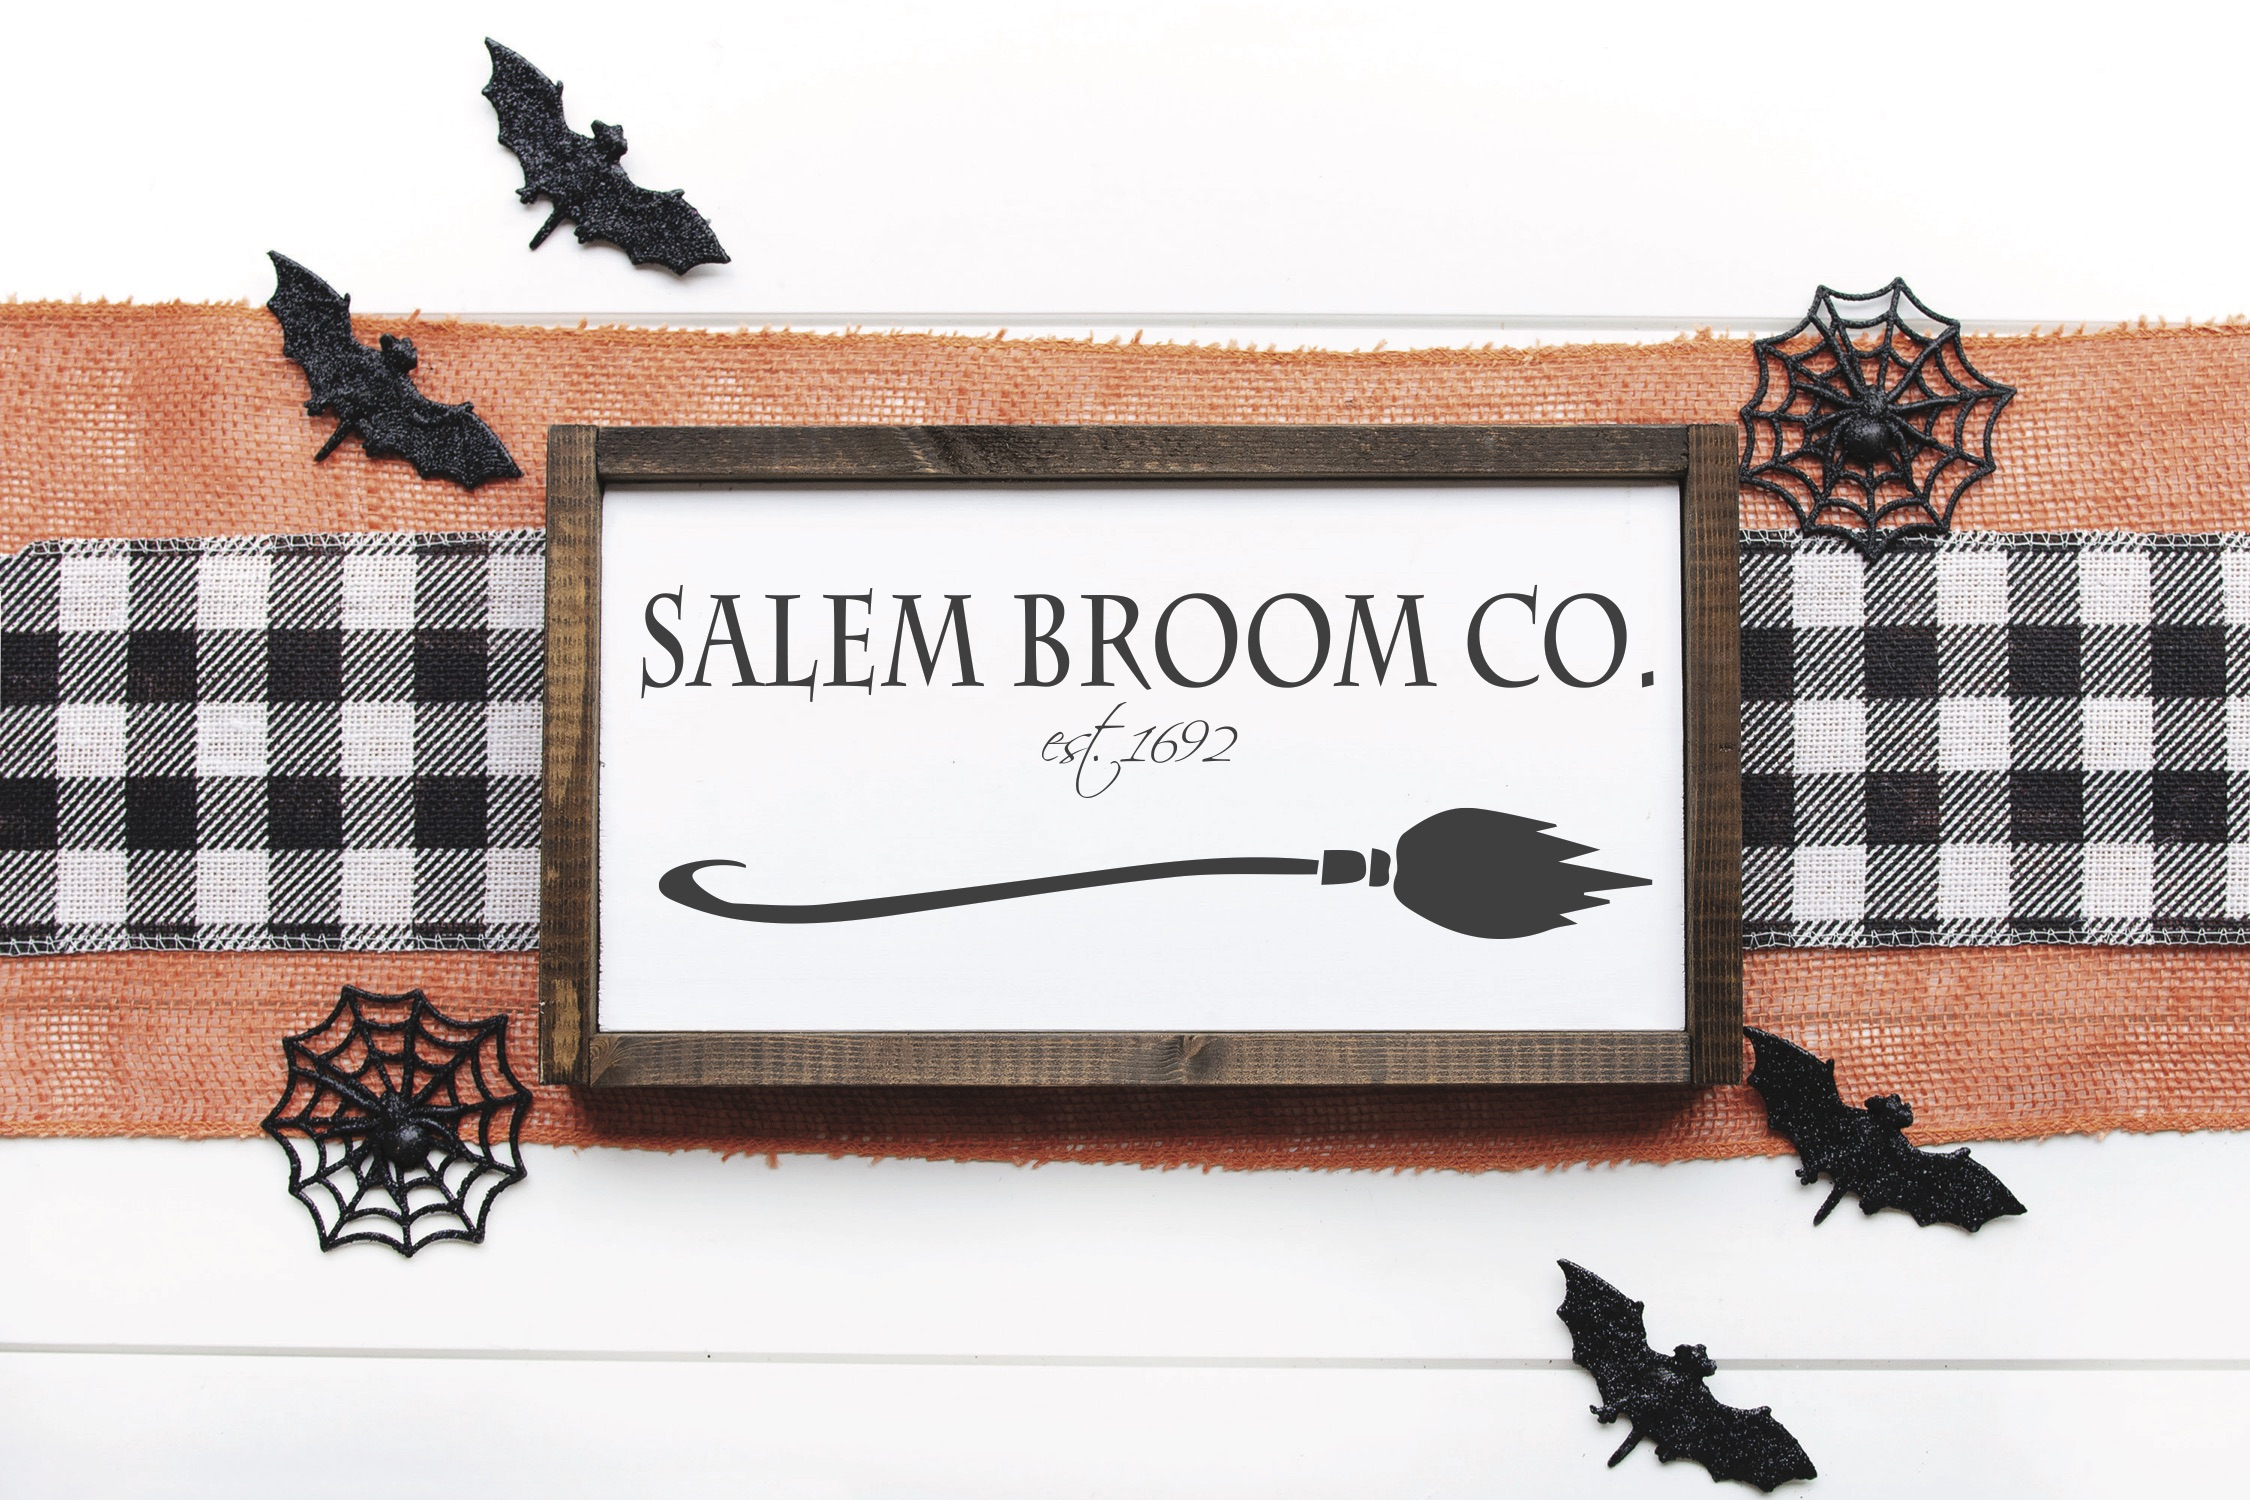 Salem Broom Co Sign